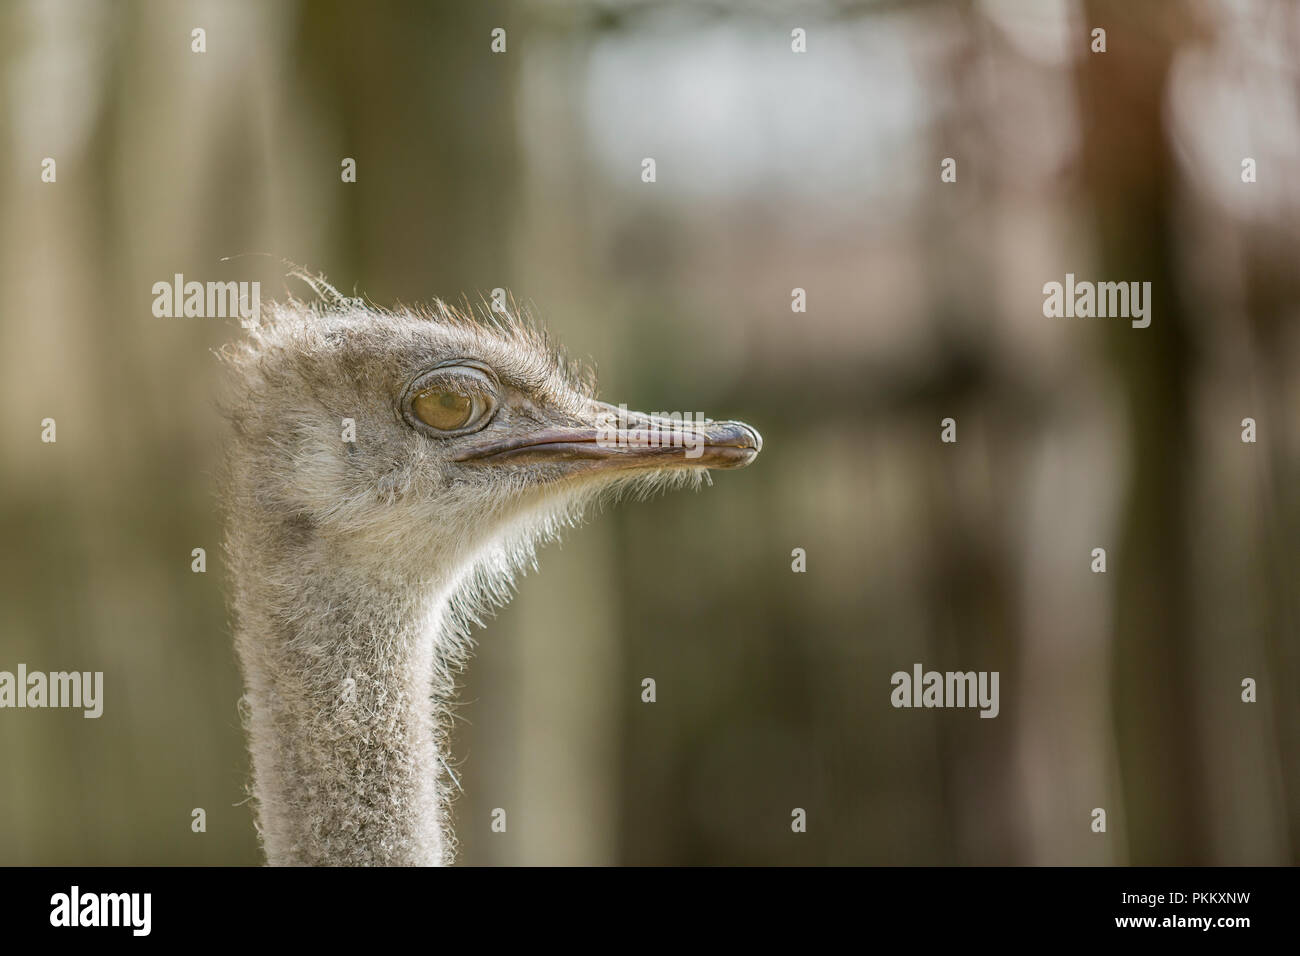 Beautiful photo of the head of a single emu on a blurred background - Stock Image